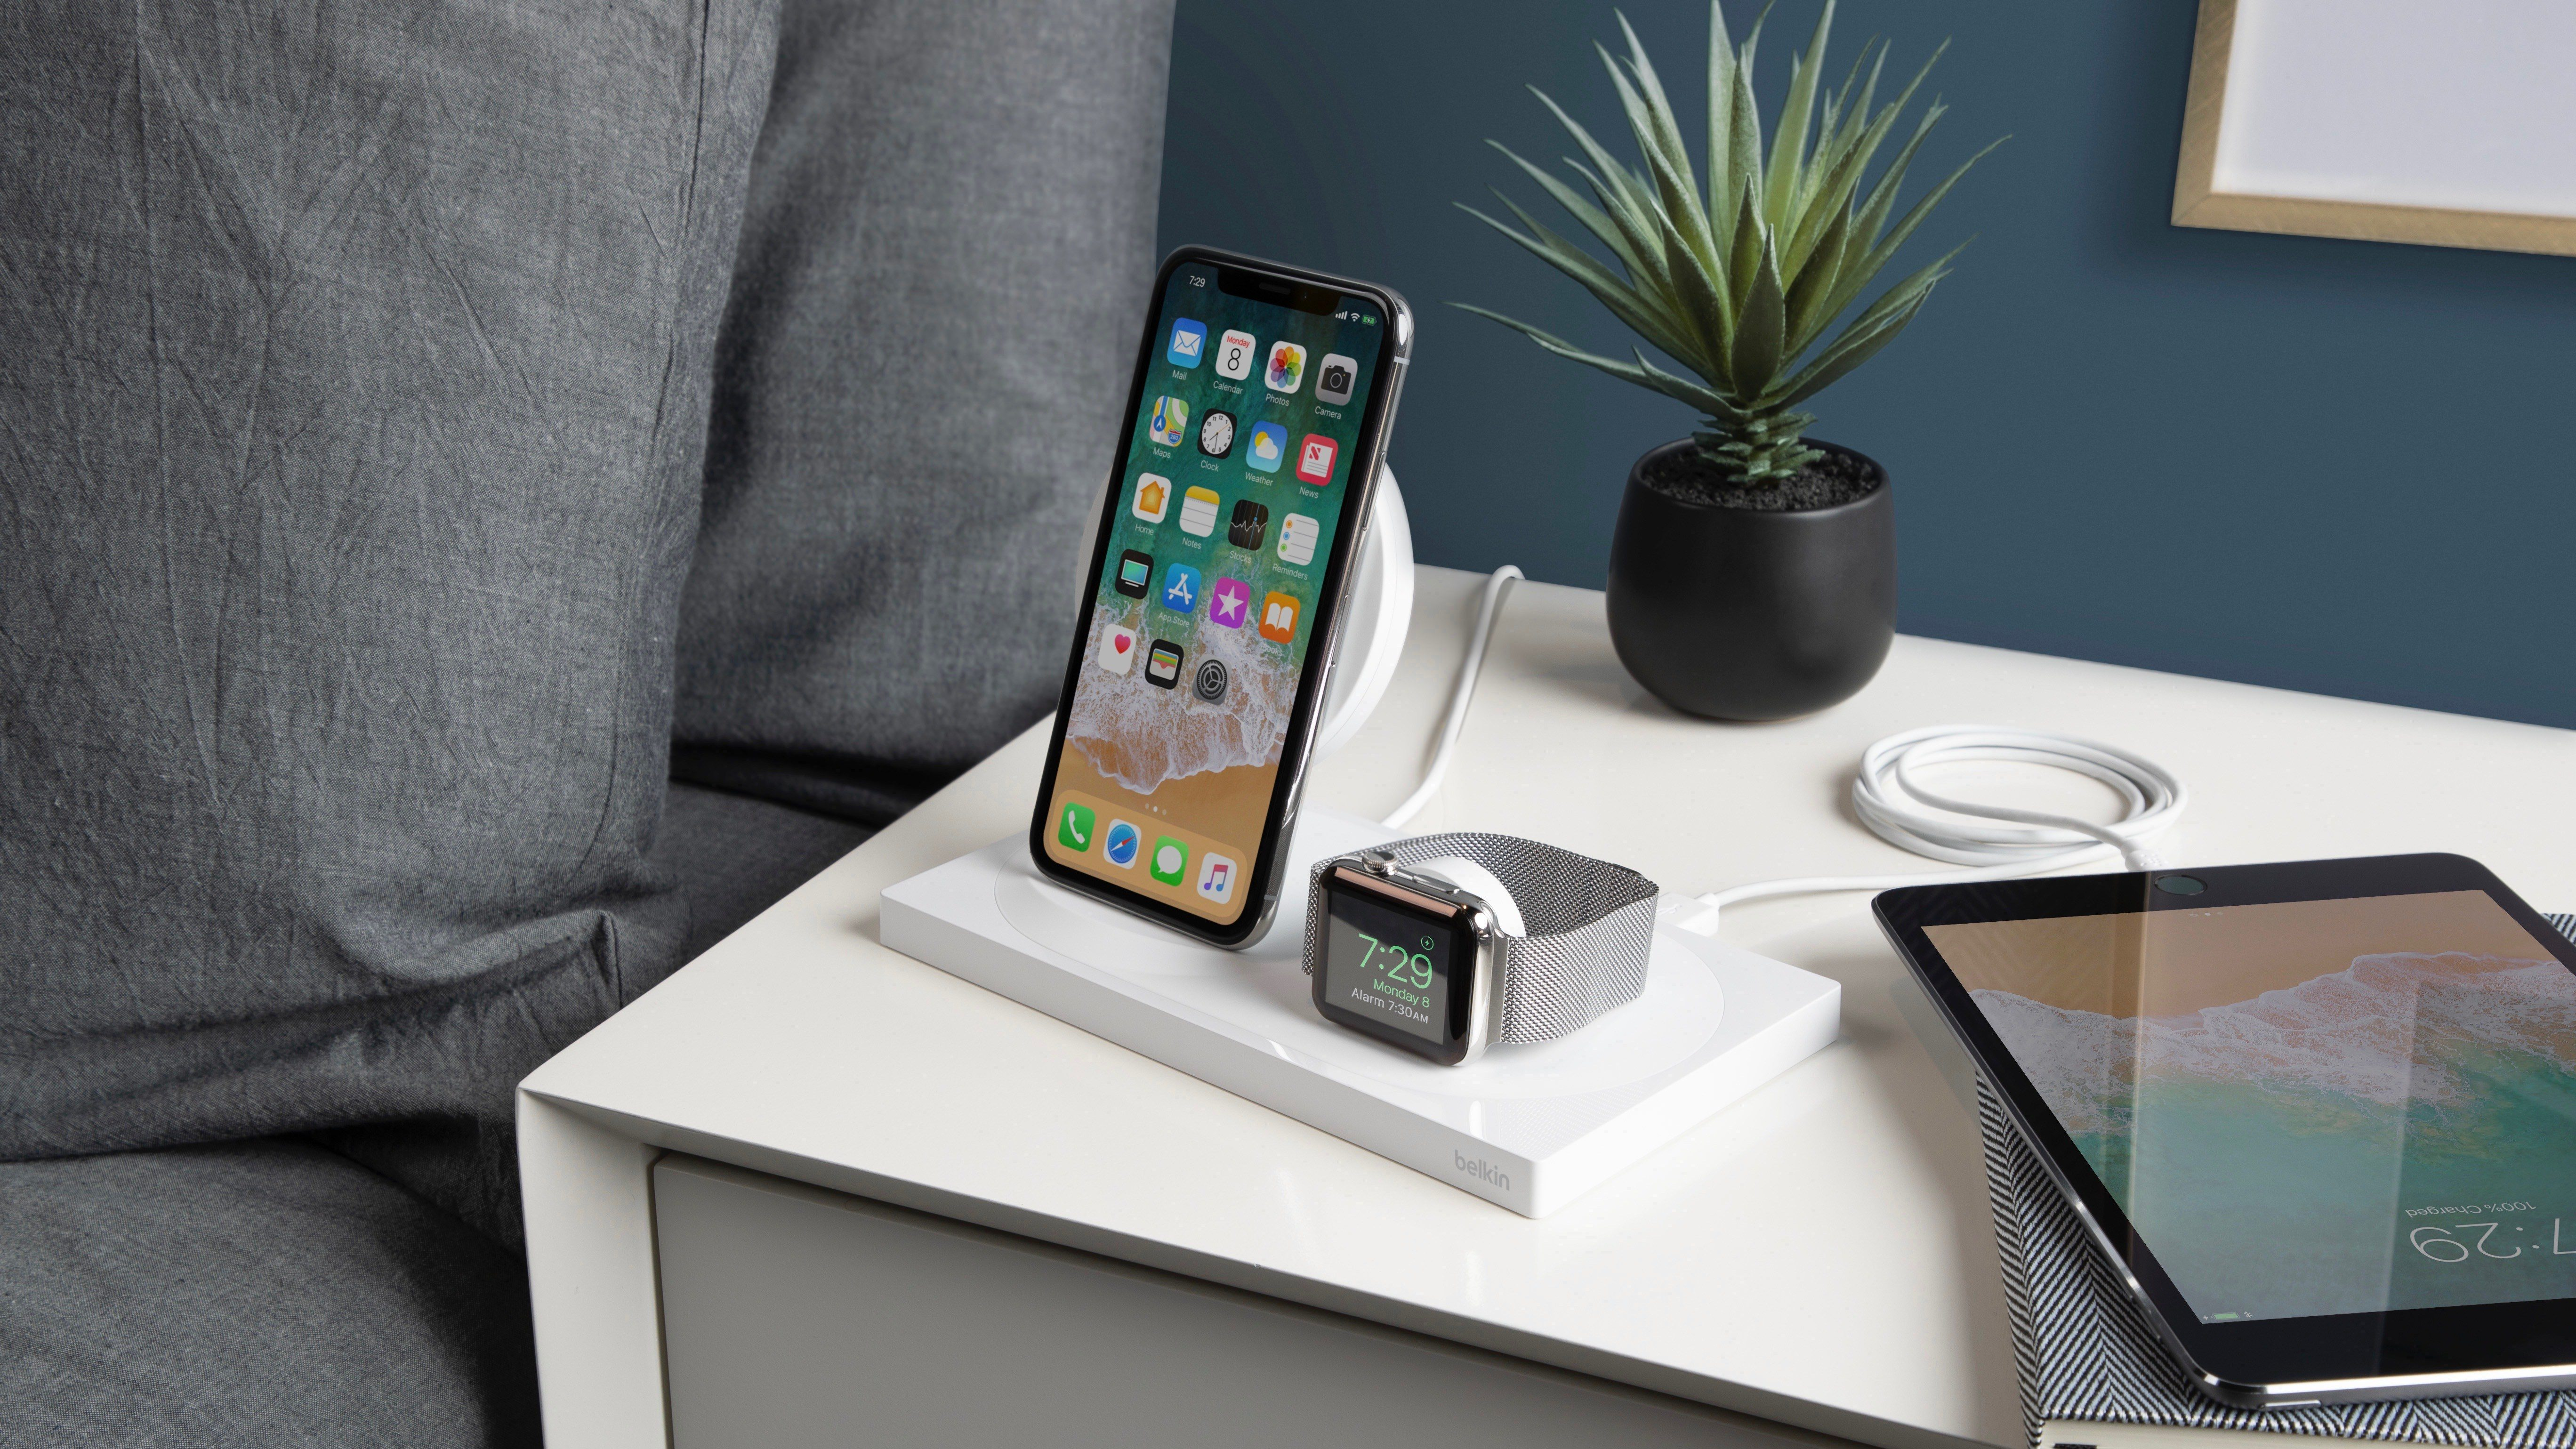 Save 25% on Belkin Wireless Chargers: Boost Up iPhone + Apple Watch Dock $105, more from $45